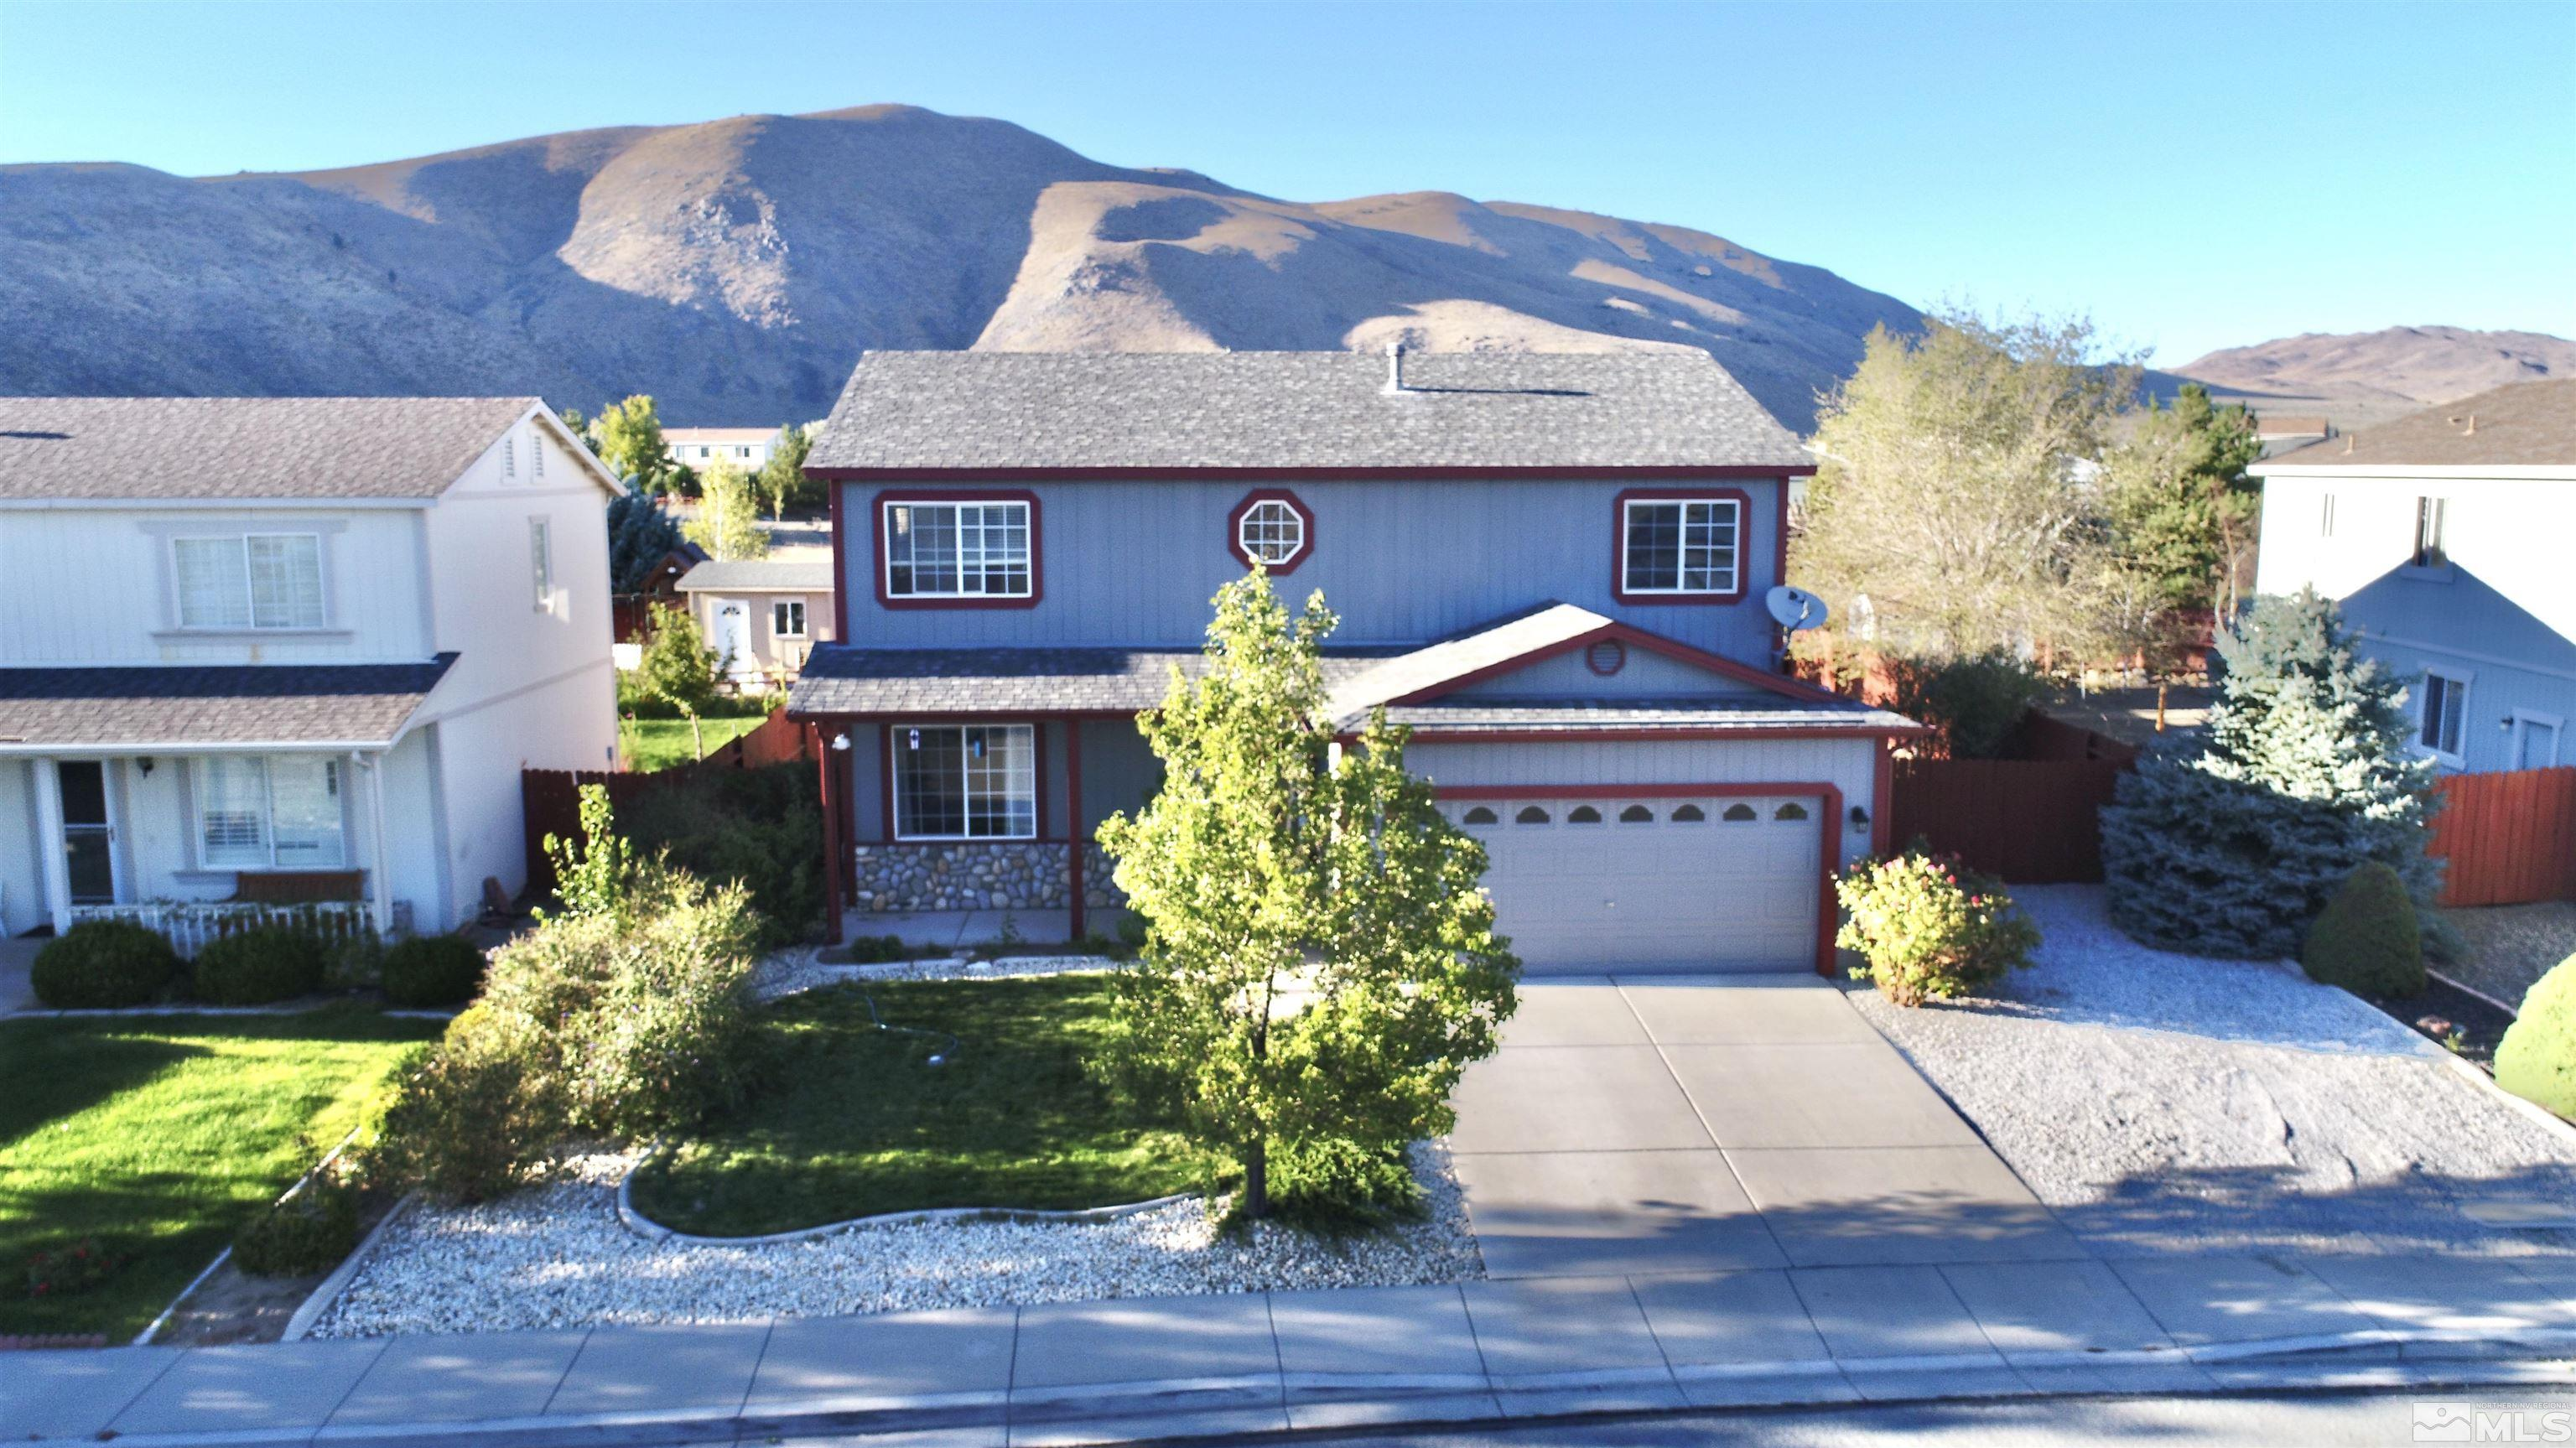 Image for 17625 Baileyville Ct., Reno, NV 89506